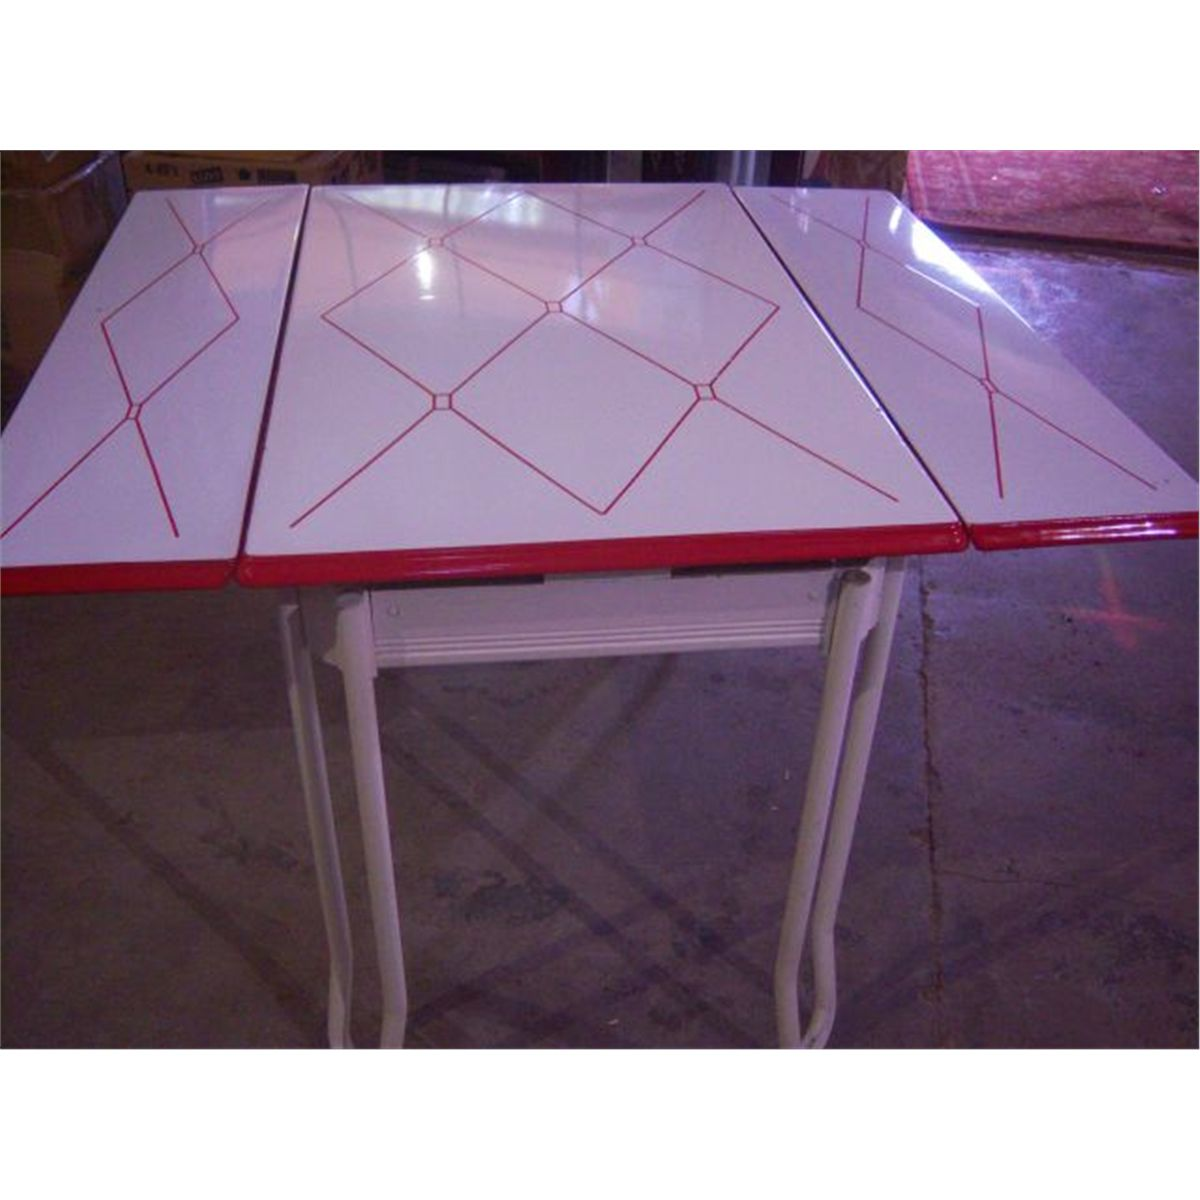 Table With Slide Out Leaves Retro 1950 39s Metal Dining Table W 2 Slide Out Leaves